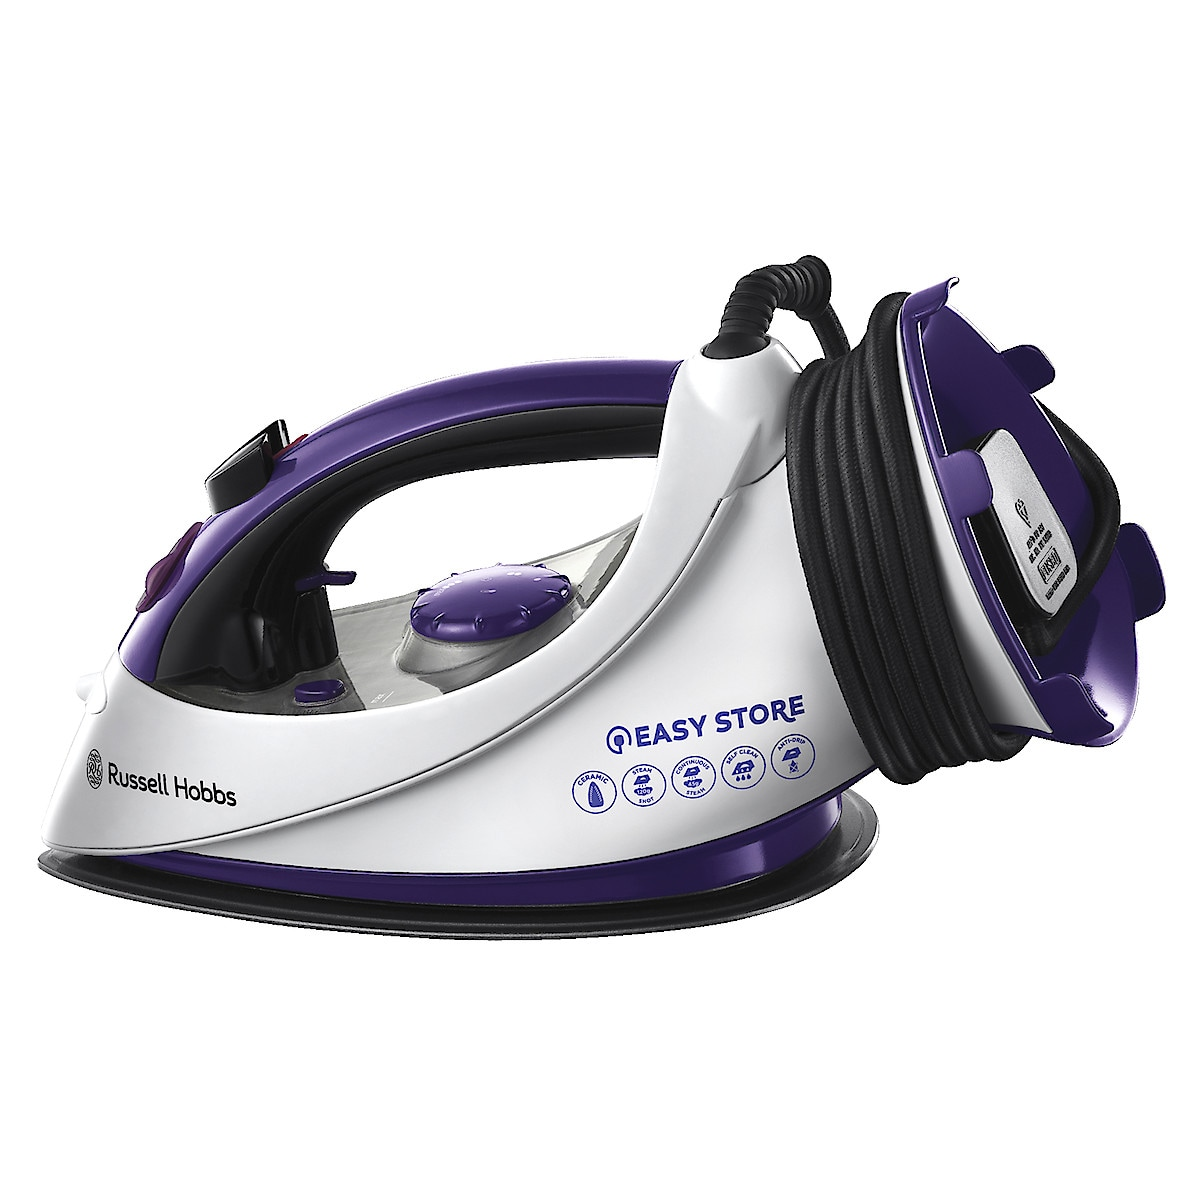 Russell Hobbs 18617 Easy Store Steam Iron